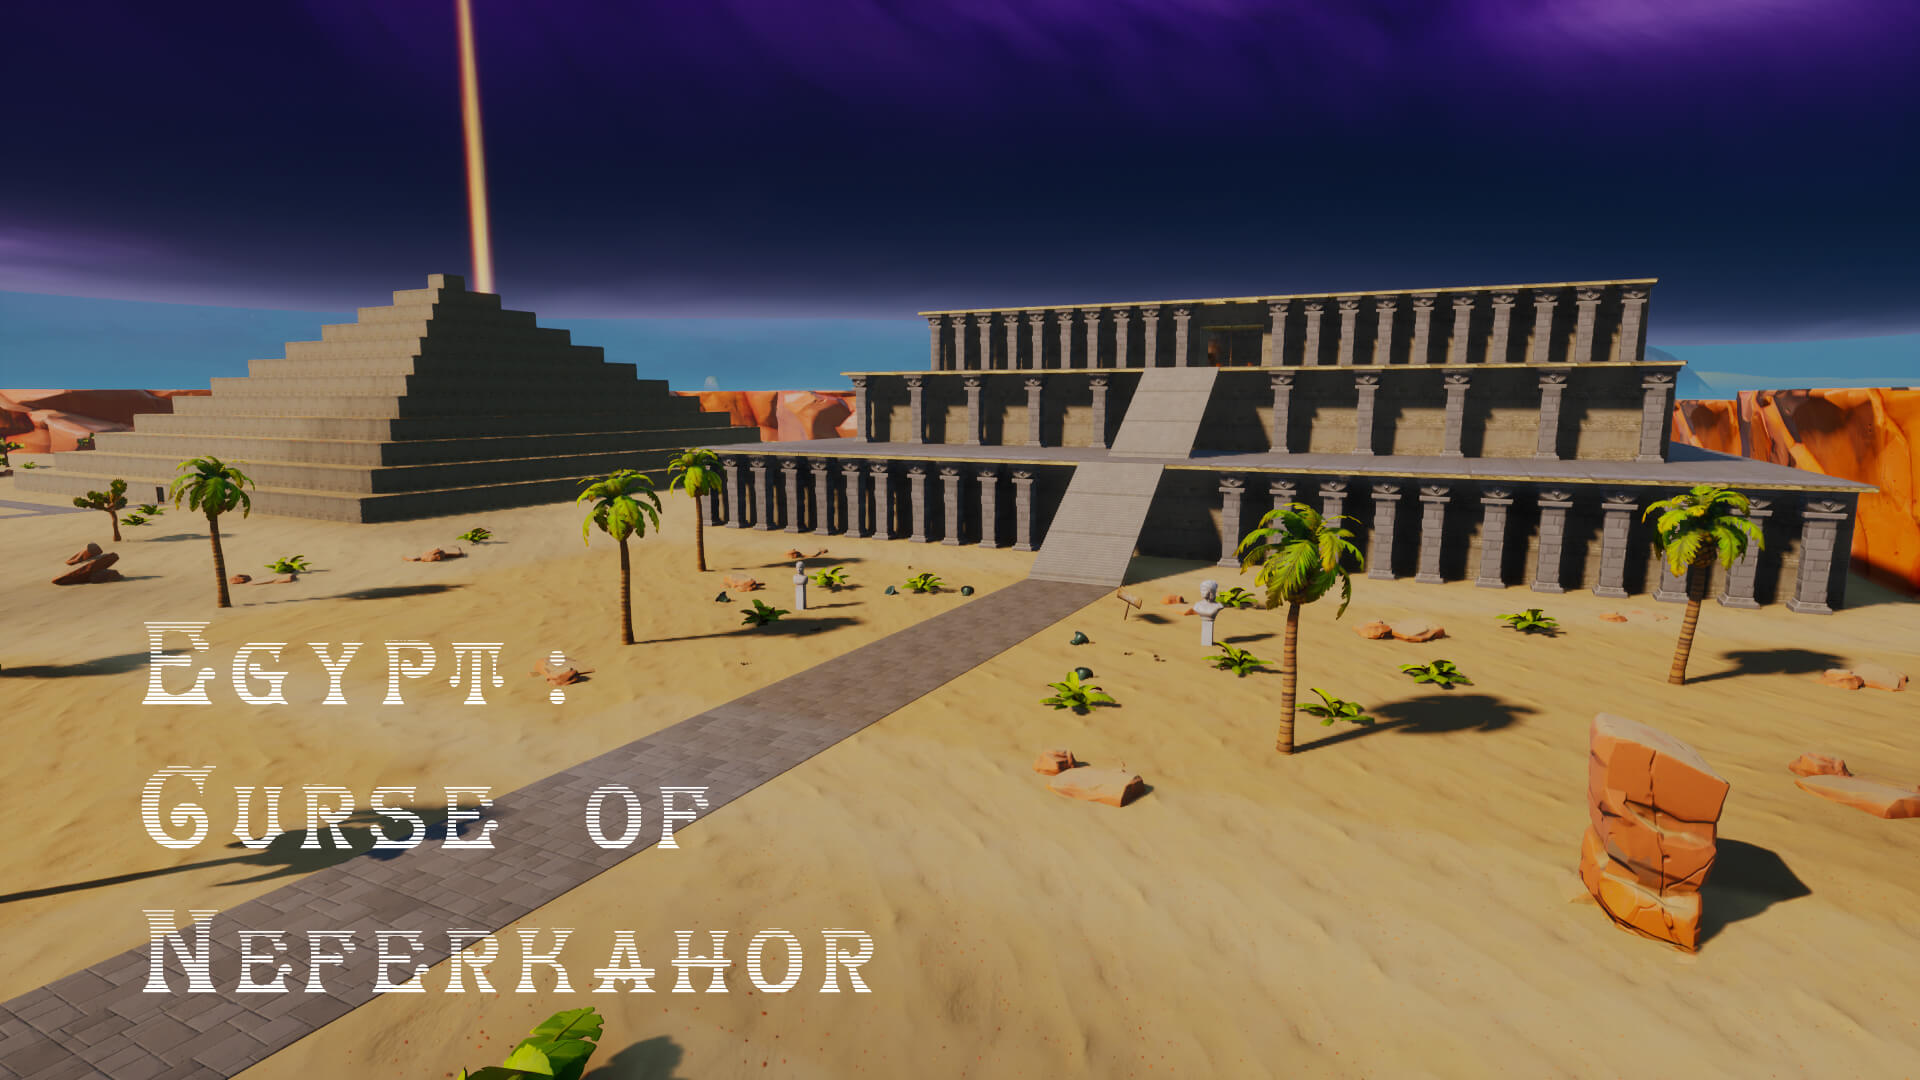 EGYPT: CURSE OF NEFERKAHOR